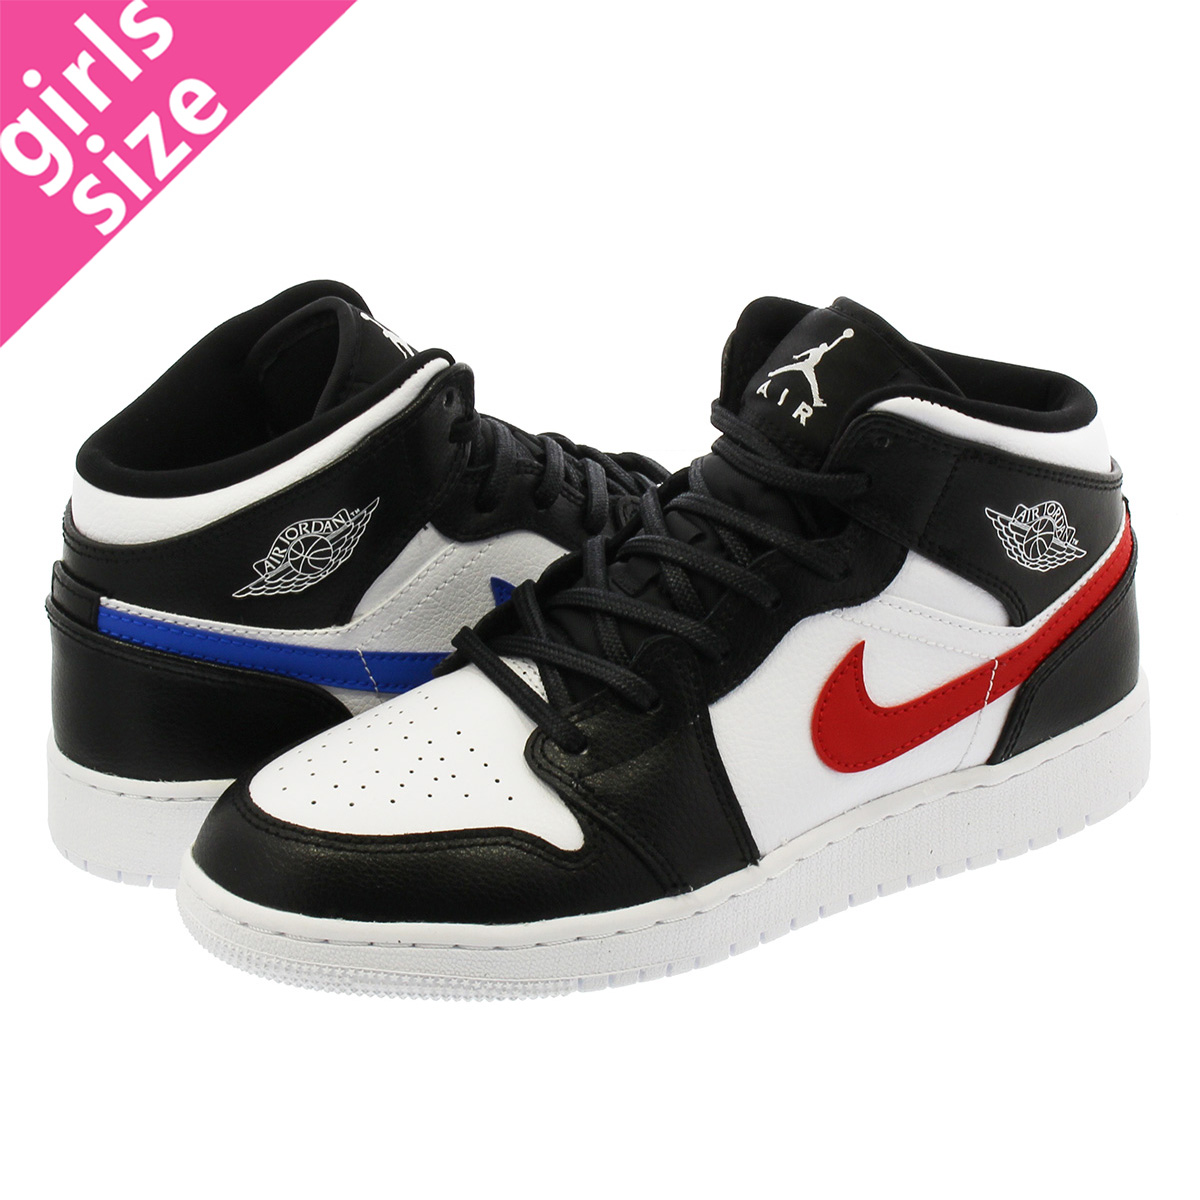 7fc7f63e3305b NIKE AIR JORDAN 1 MID BG Nike Air Jordan 1 mid BG BLACK WHITE RED YELLOW  BLUE GREEN 554